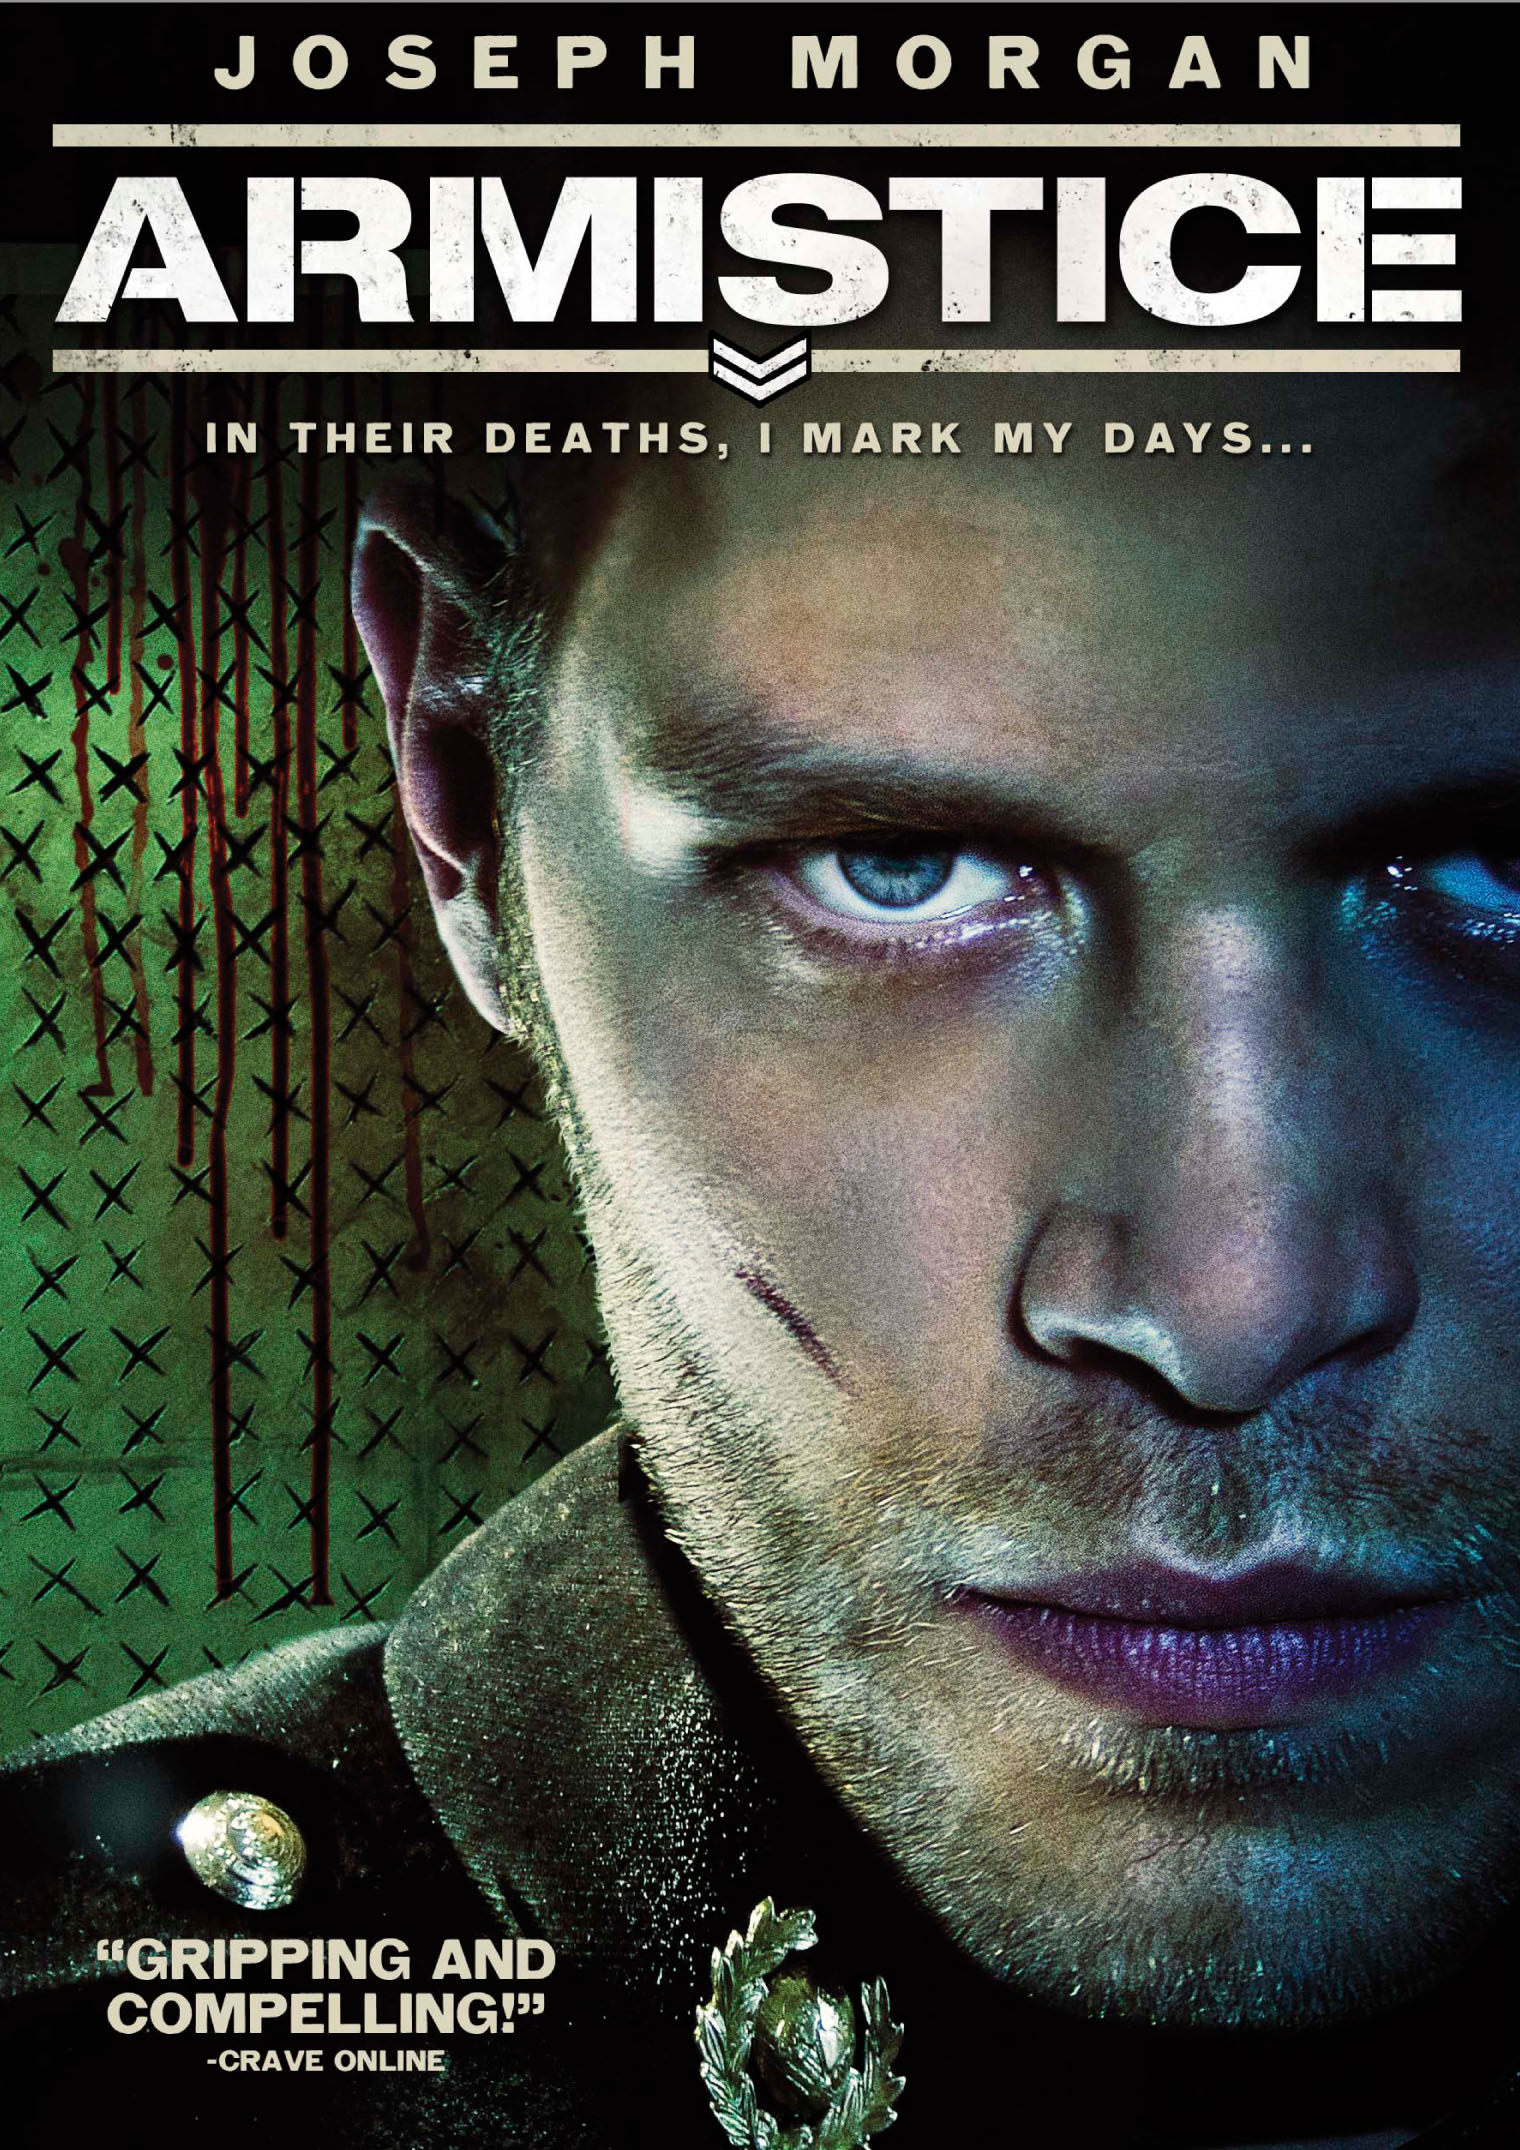 Joseph Morgan Battles His Demons with Armistice DVD Release